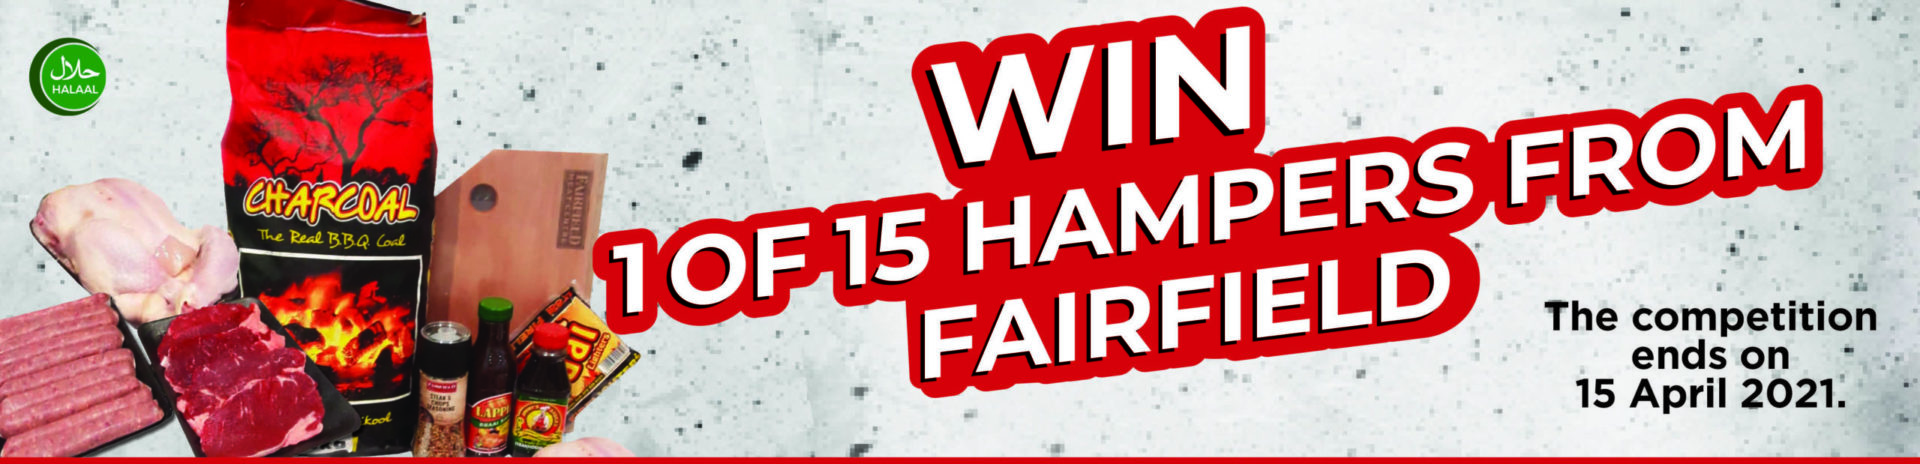 win one of fifteen hampers from fairfield competition banner